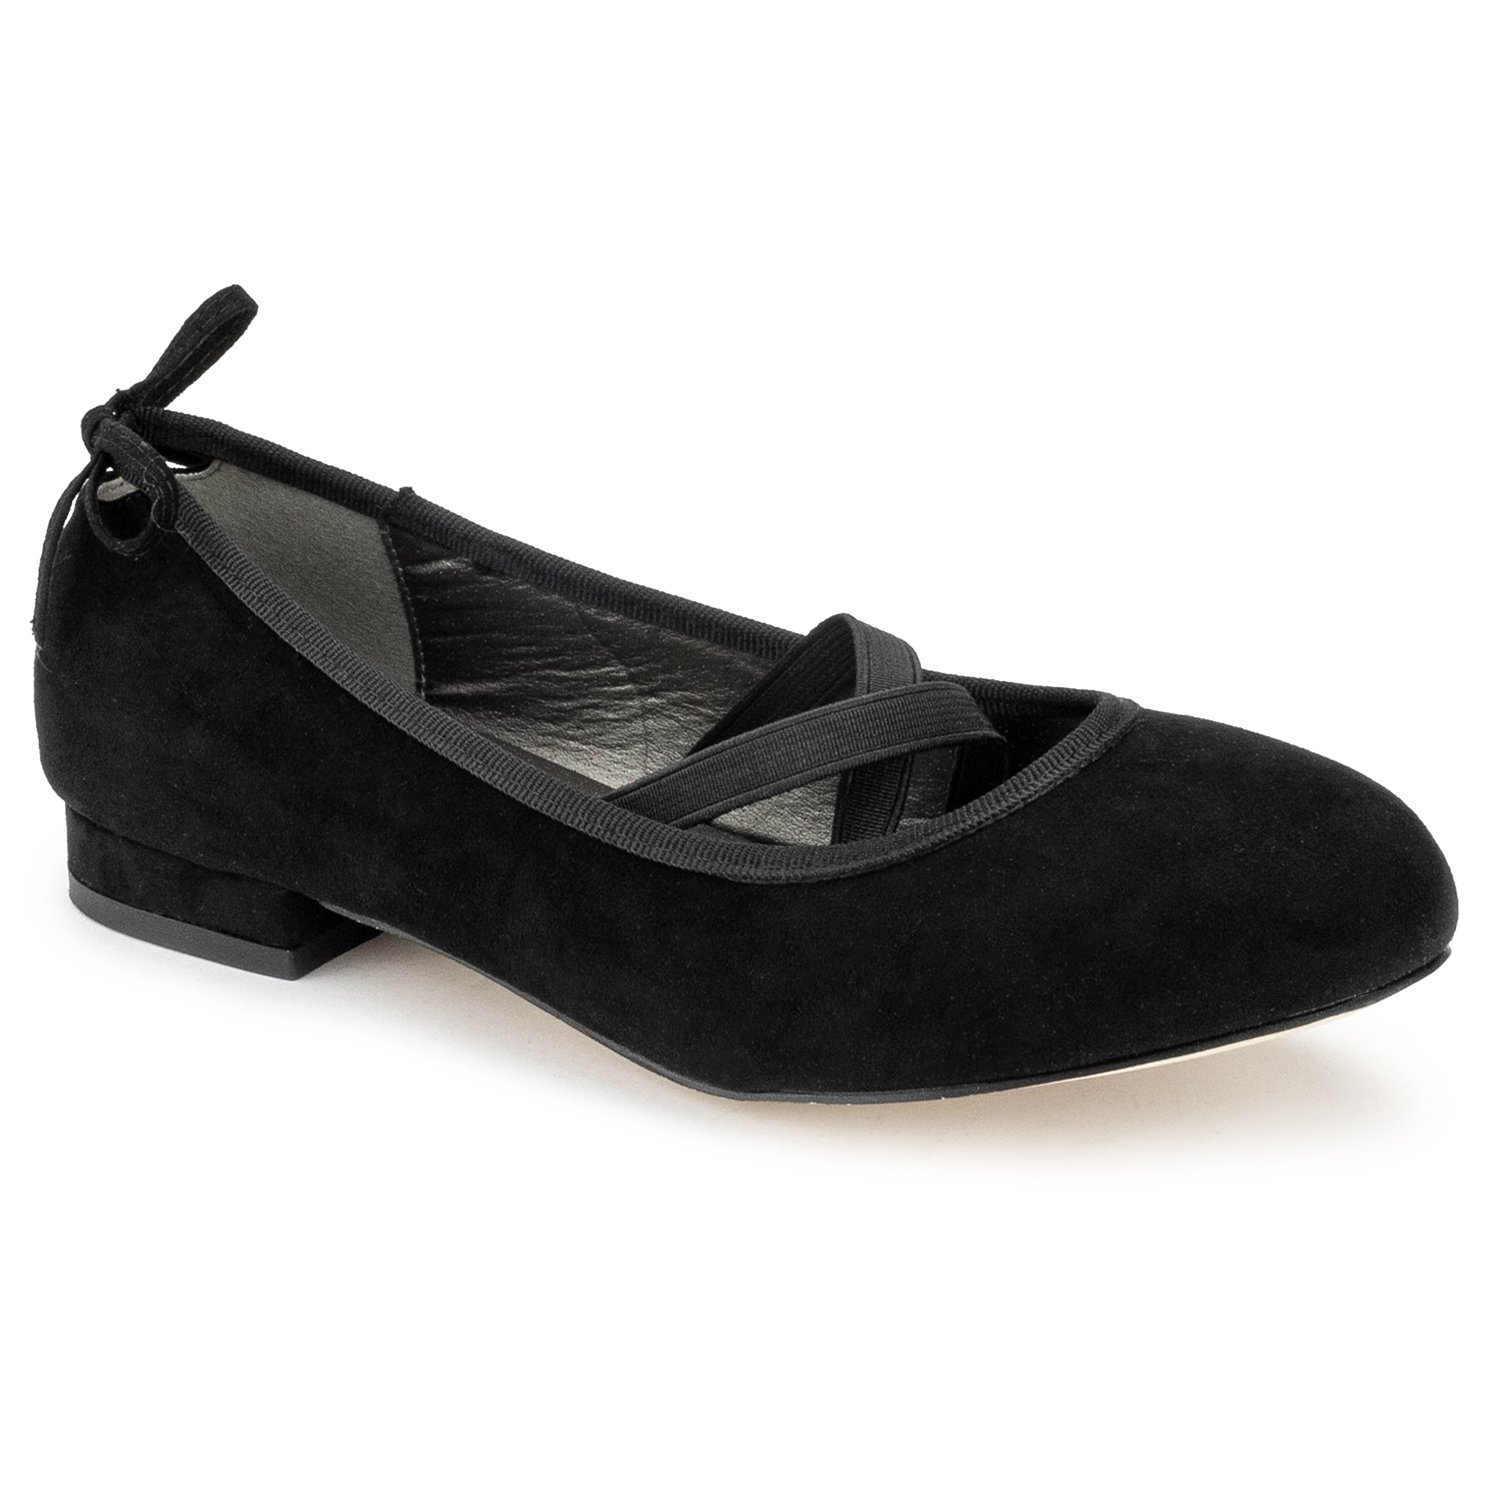 RF ROOM OF FASHION Mary Jane Ballet Flats - Stylish and Comfortable Ballerina Style Flat Shoes - Women's Mary Janes with a Low Heel and Bow Back Straps - Dress Up Down - Slip-on Black SU (9)